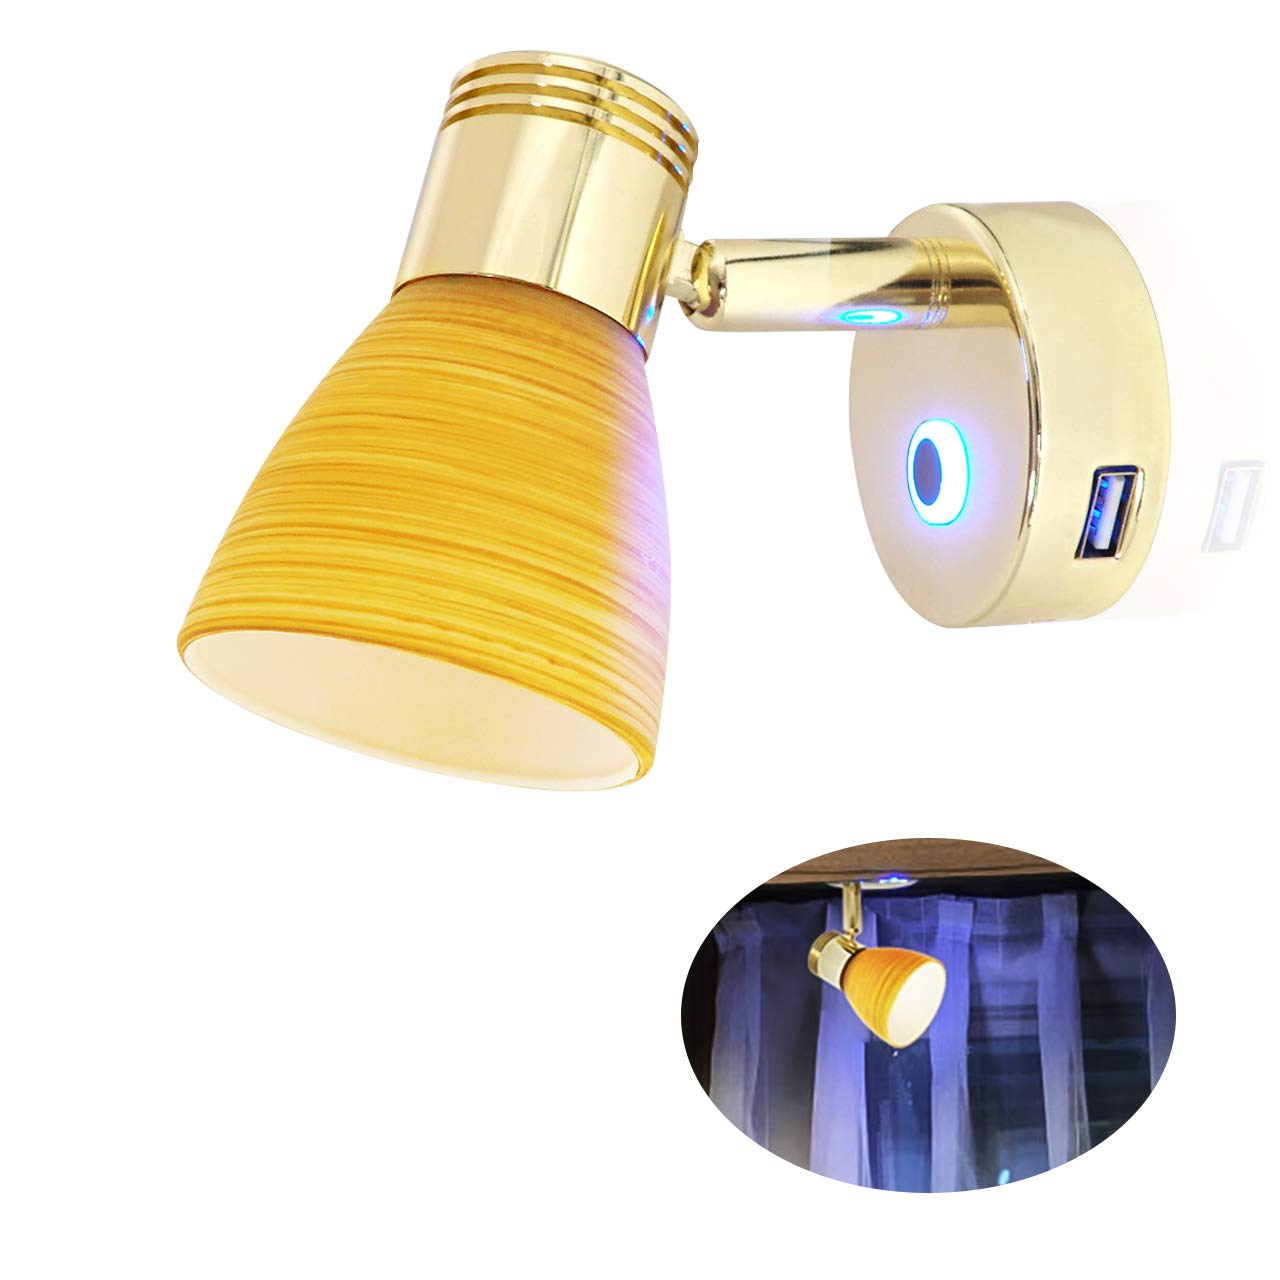 Teak Color Glass Lampshade 12V USB Reading Light - 3W Warm White, Touch Adjustable, Blue Decor Light, Beautiful Box, Stainless Steel Screws, Interior Lamp, Bed Lamp for Yacht RV Boat Caravan by Genuine Marine